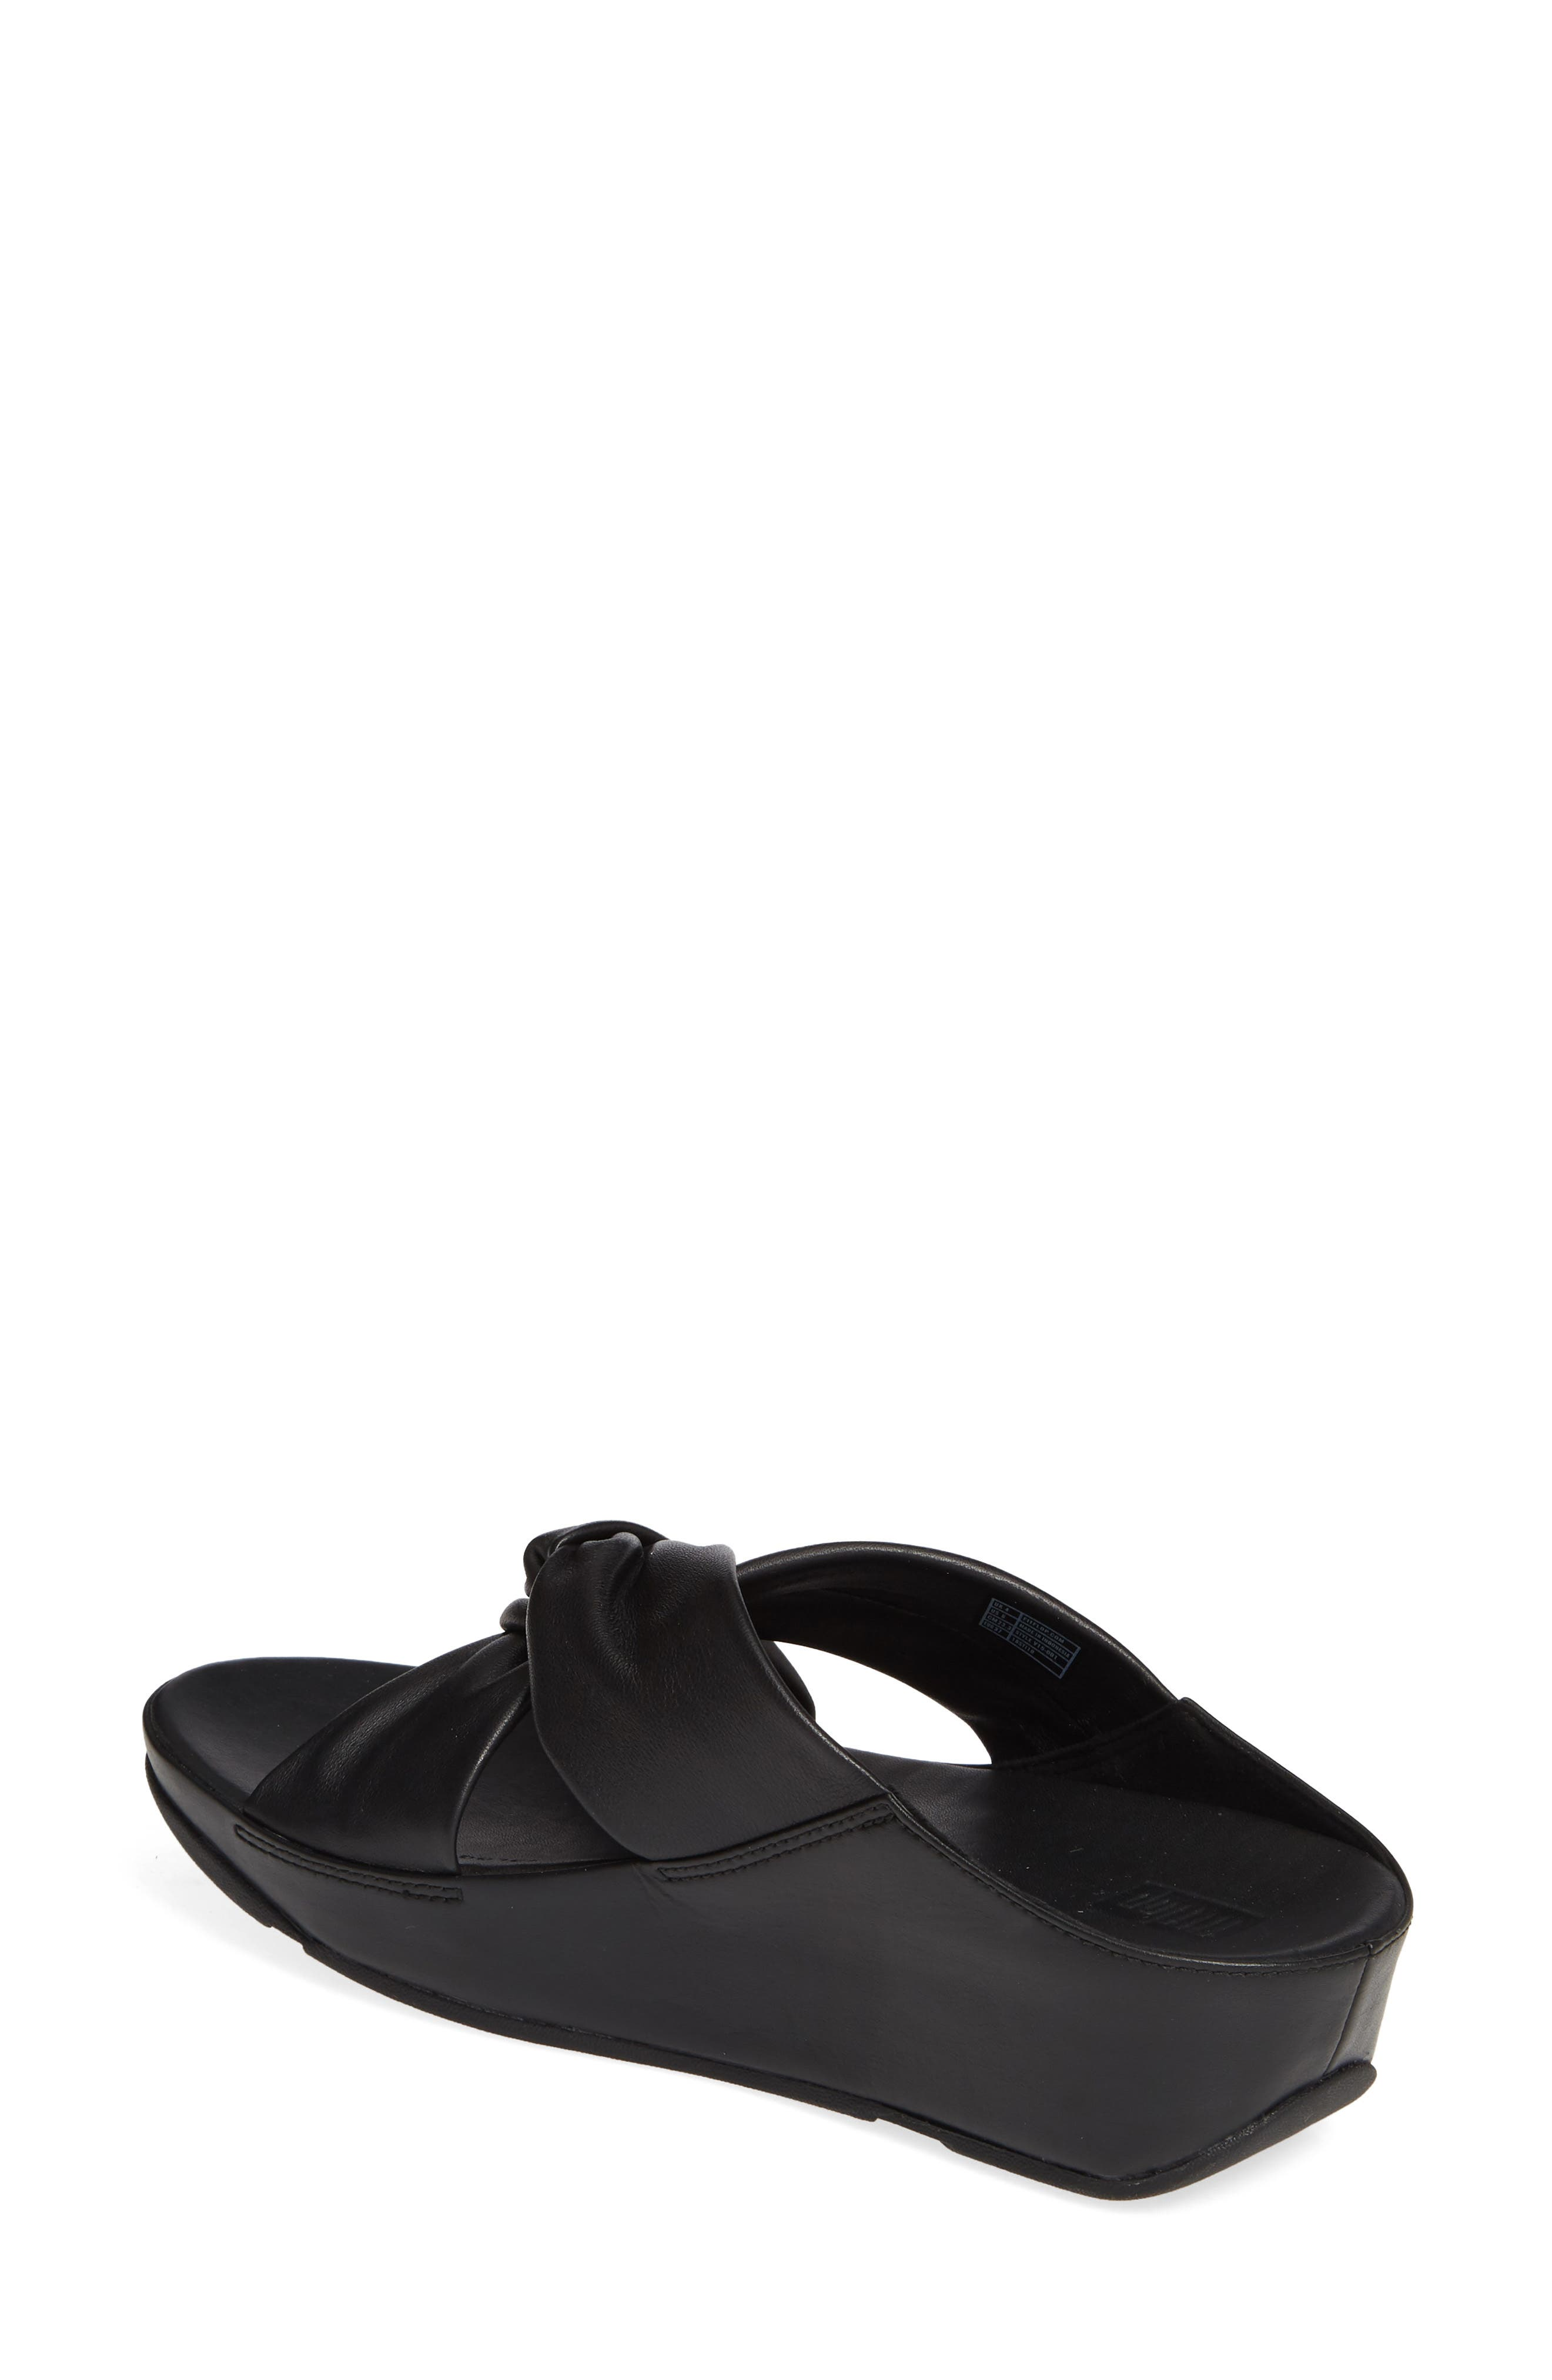 FITFLOP, Twiss Slide Sandal, Alternate thumbnail 2, color, BLACK LEATHER